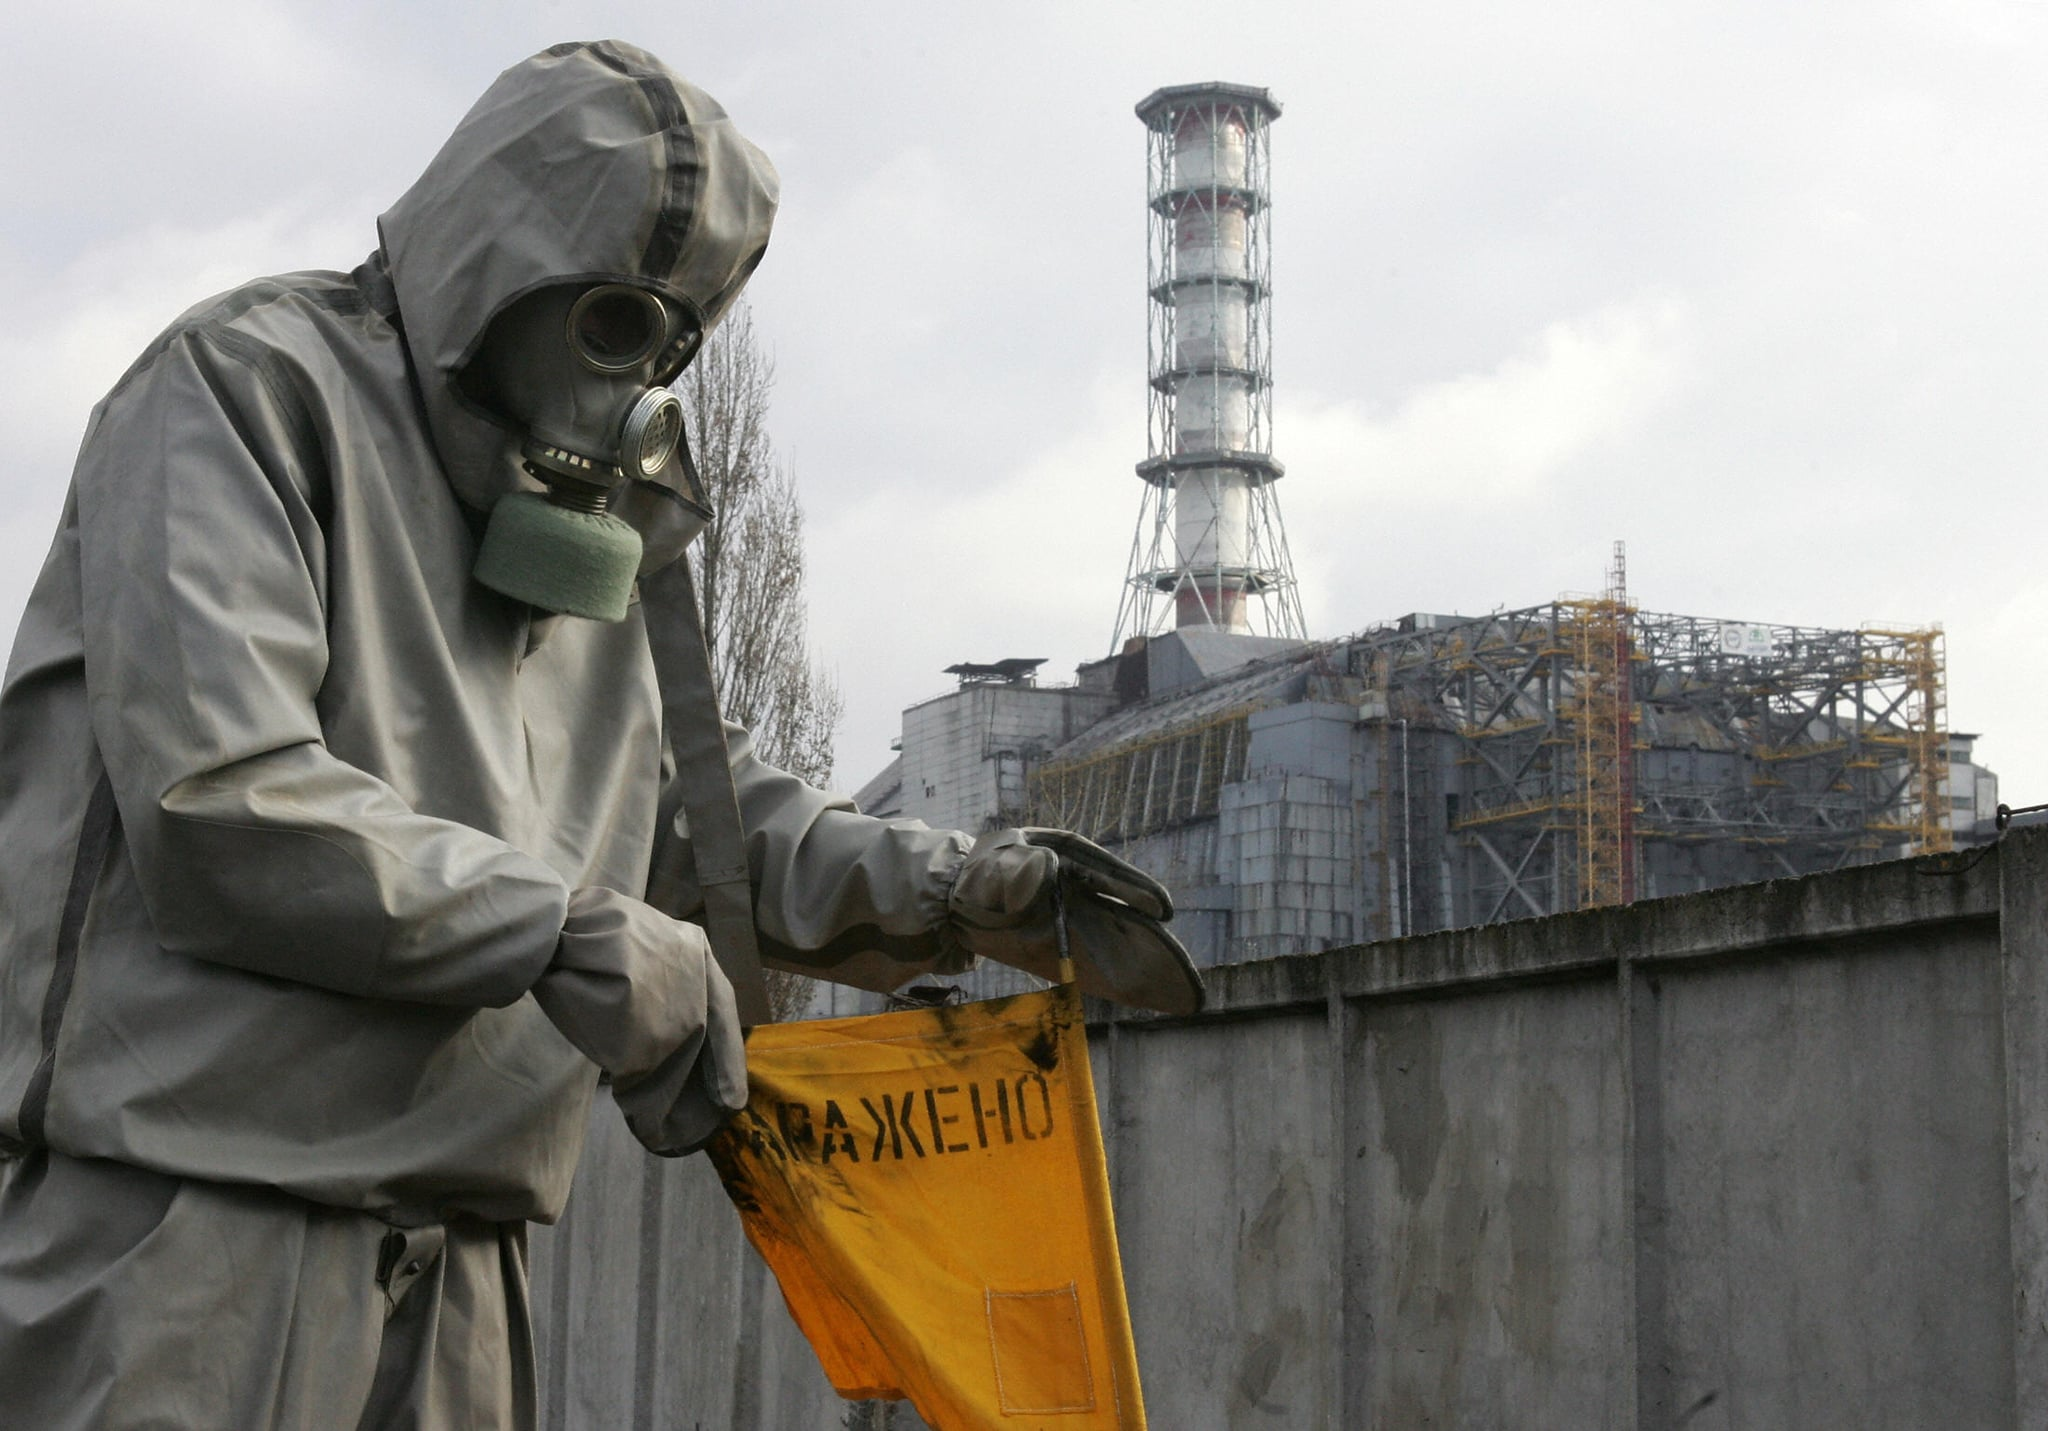 Chernobyl, UKRAINE:  A rescue worker sets flag signalling radioactivity in front of Chernobyl nuclear power plant during a drill organized by Ukraine's Emergency Ministry 08 November 2006. Employees and rescue workers improved their reactivity in case of a collapse of the sarcophagus covering the destroyed 4th power block. AFP PHOTO/ SERGEI SUPINSKY  (Photo credit should read SERGEI SUPINSKY/AFP/Getty Images)